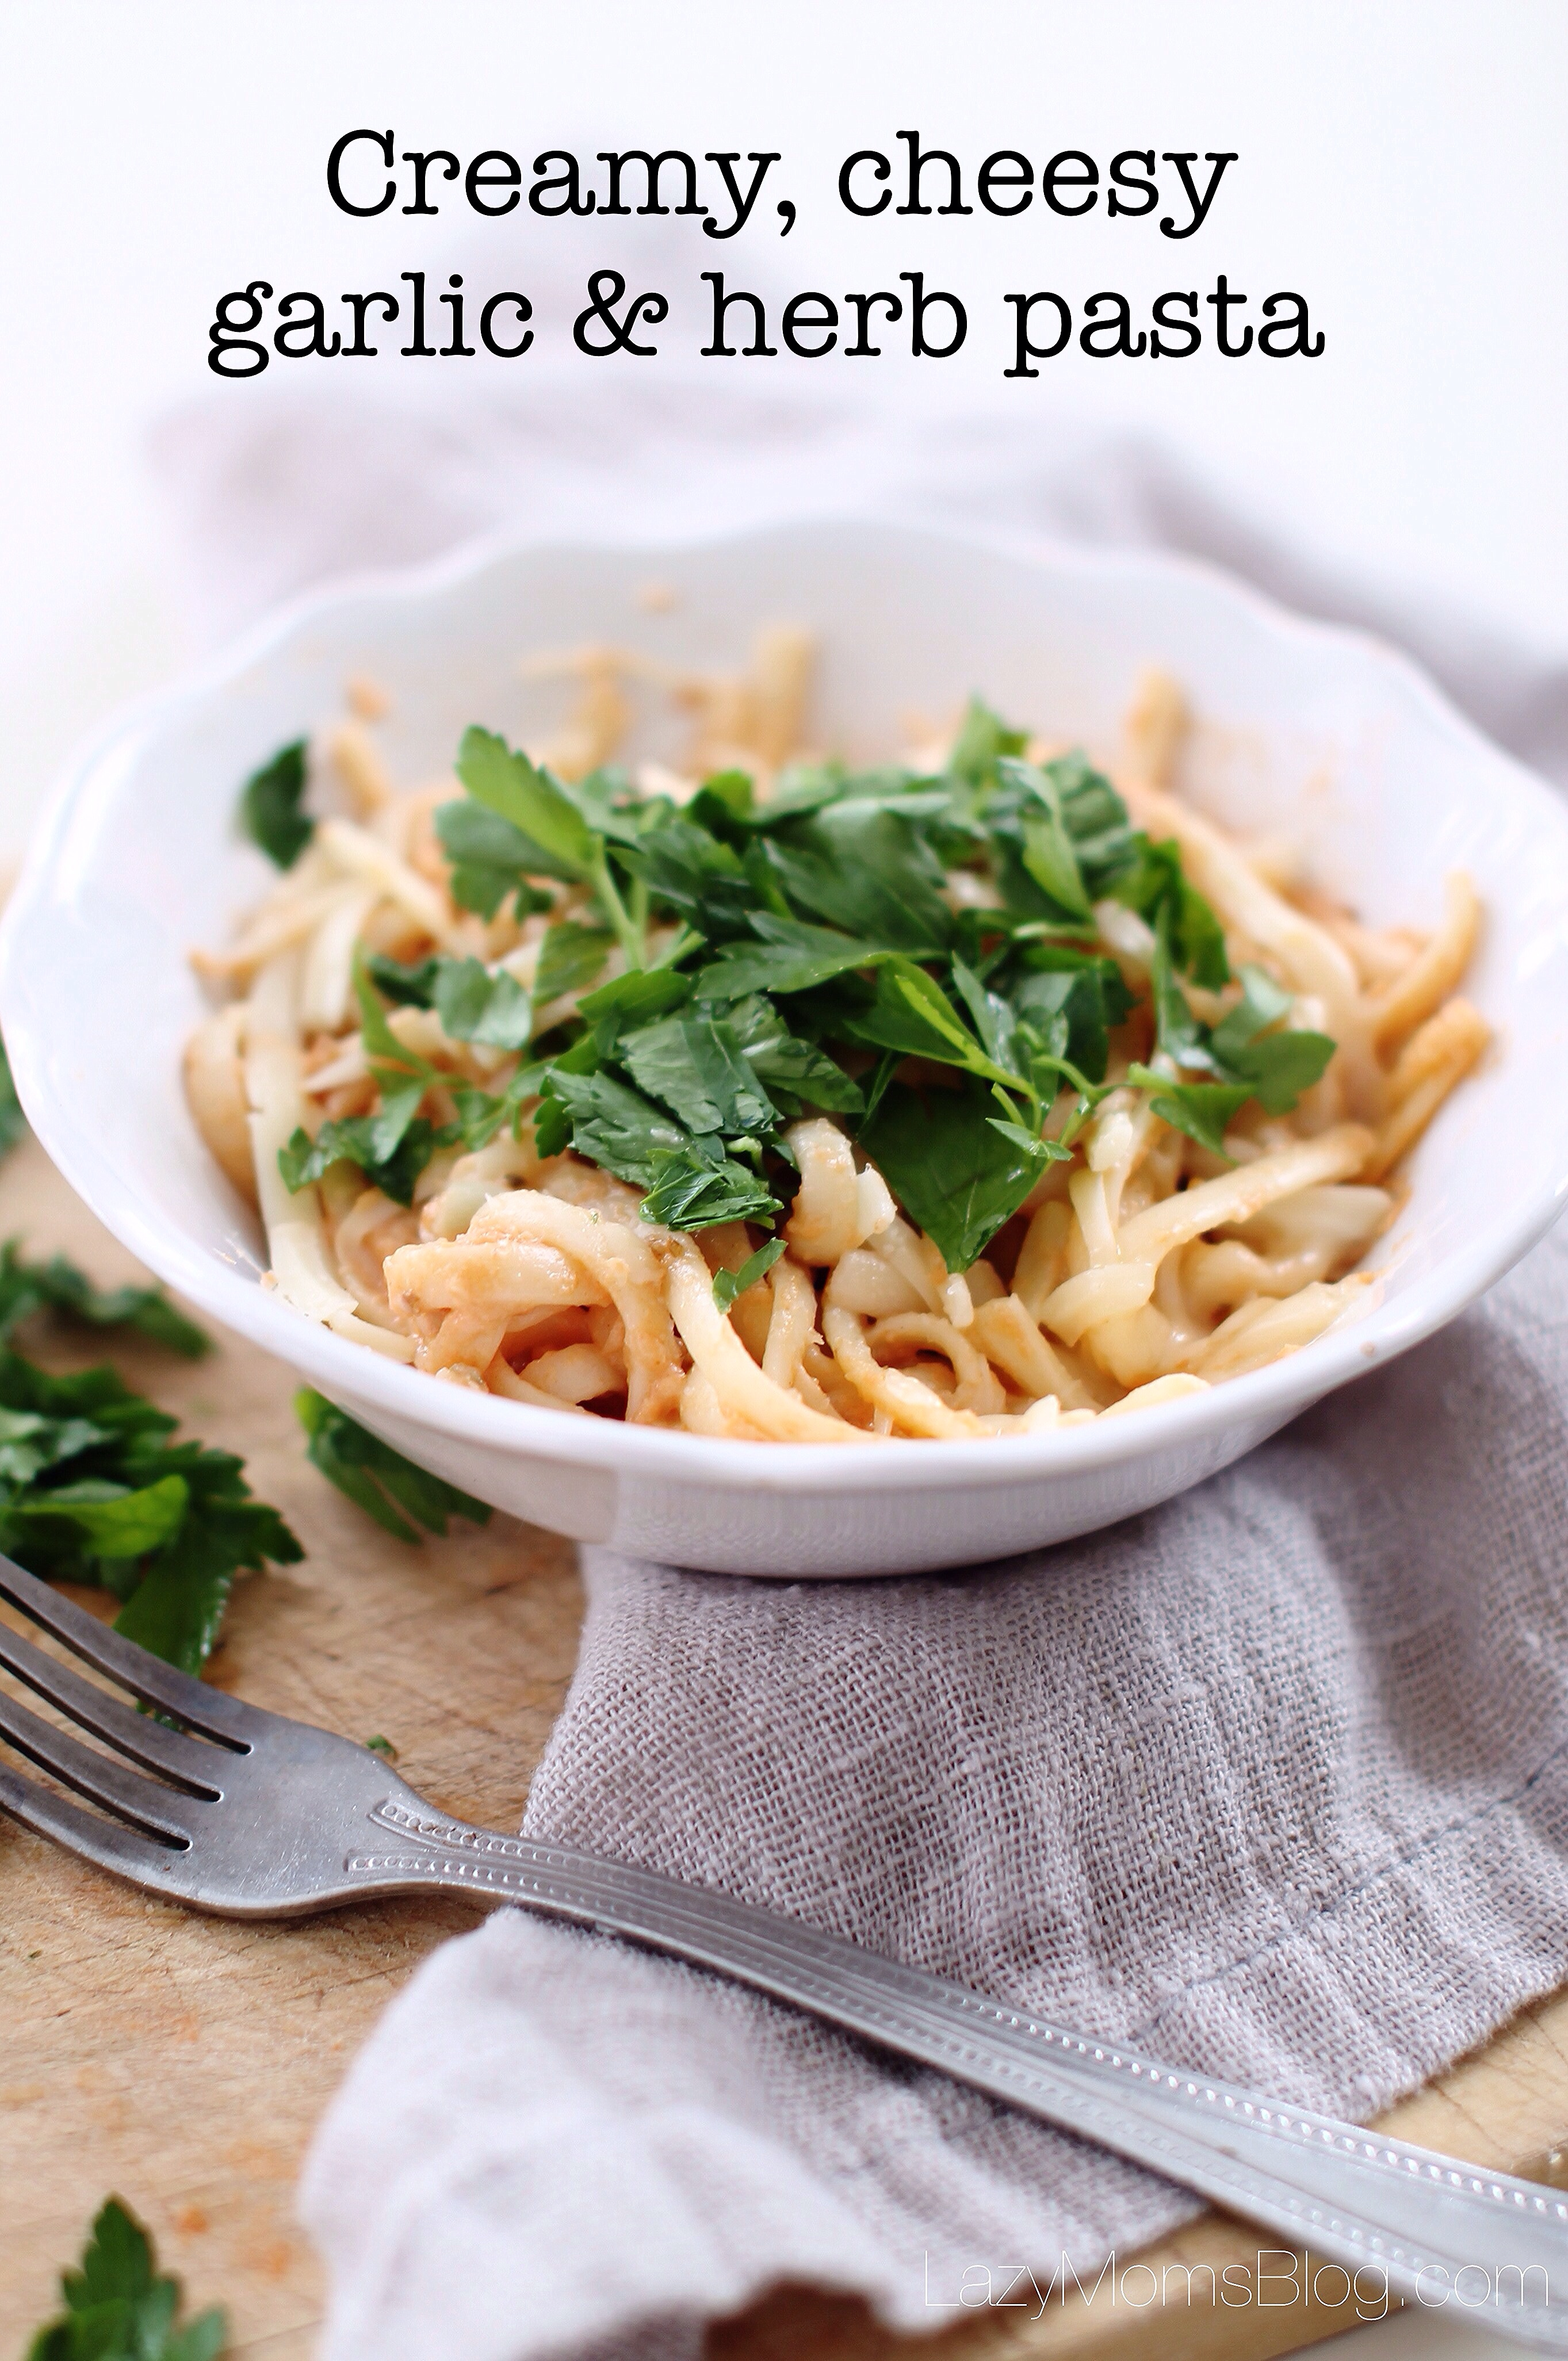 This creamy, cheesy garlic and herb pasta, is the best pasta recipe ever! The one that you'll want to make over and over again!